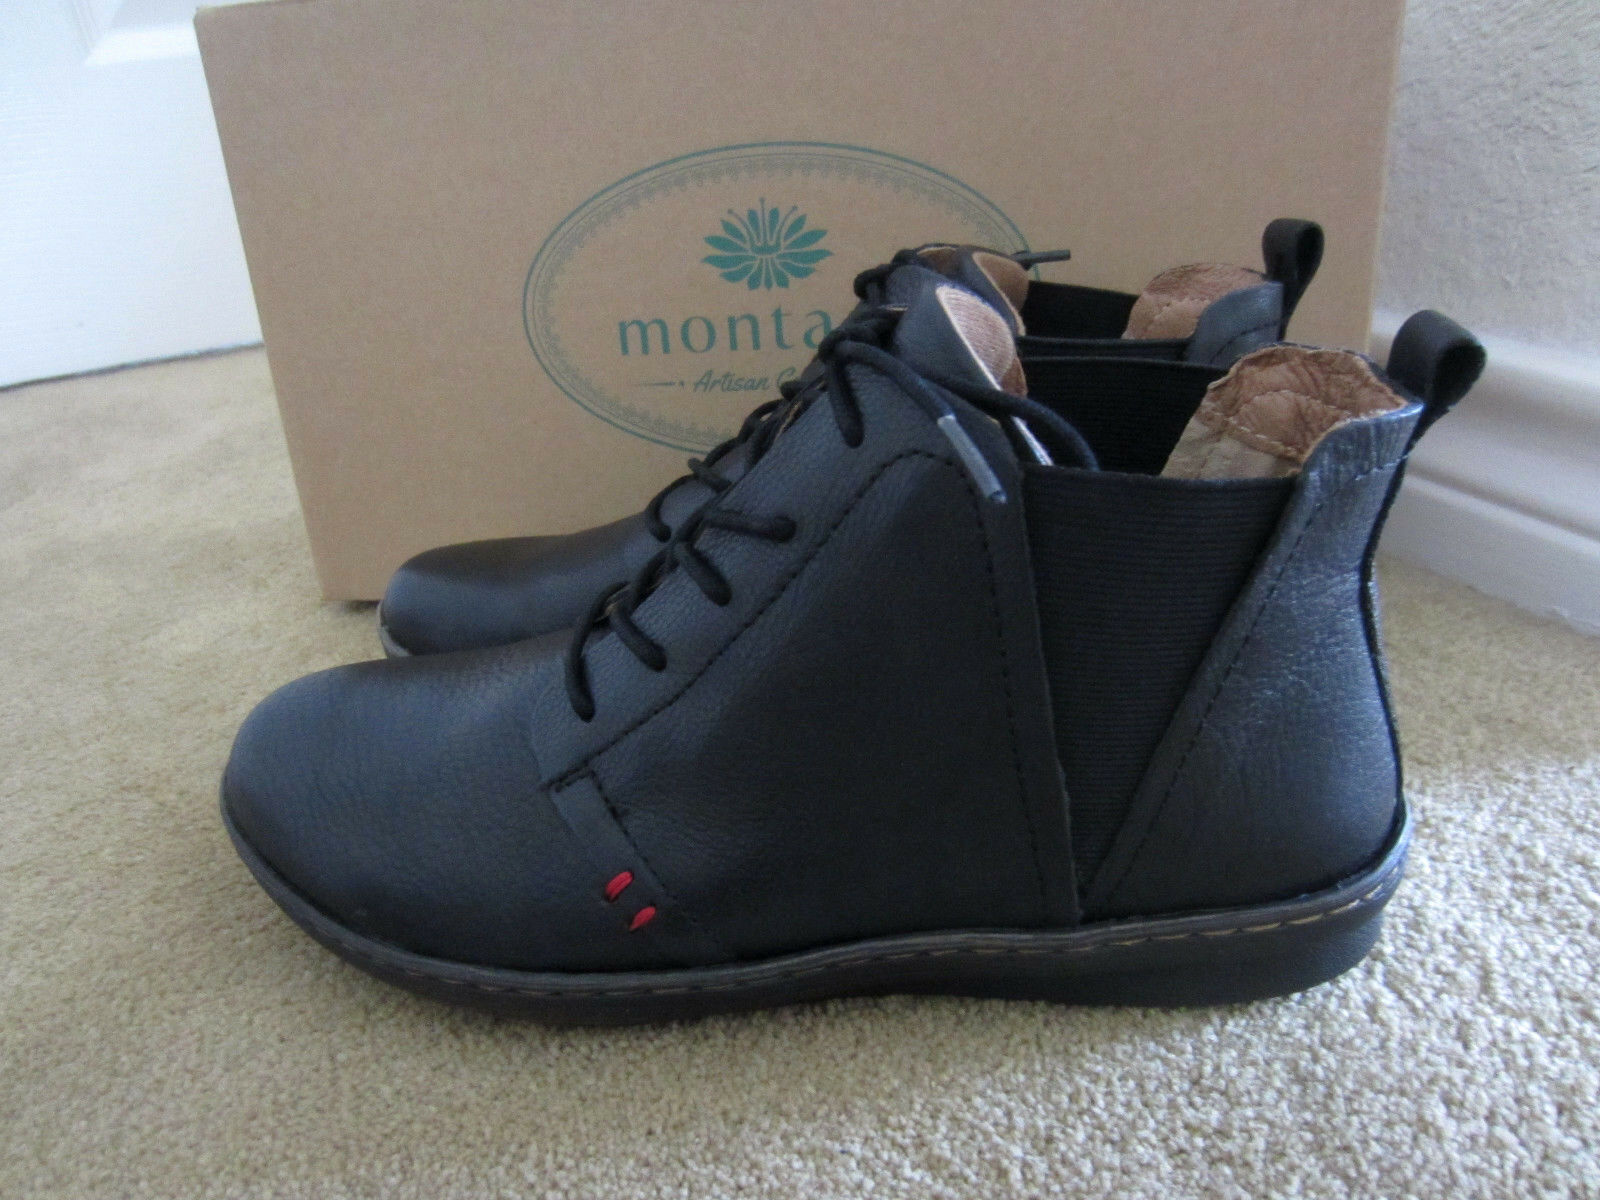 Montana Artisan Crafted Women's Black Leather Leather Leather Ankle Boots NIB Size 7M  100 e1ebed